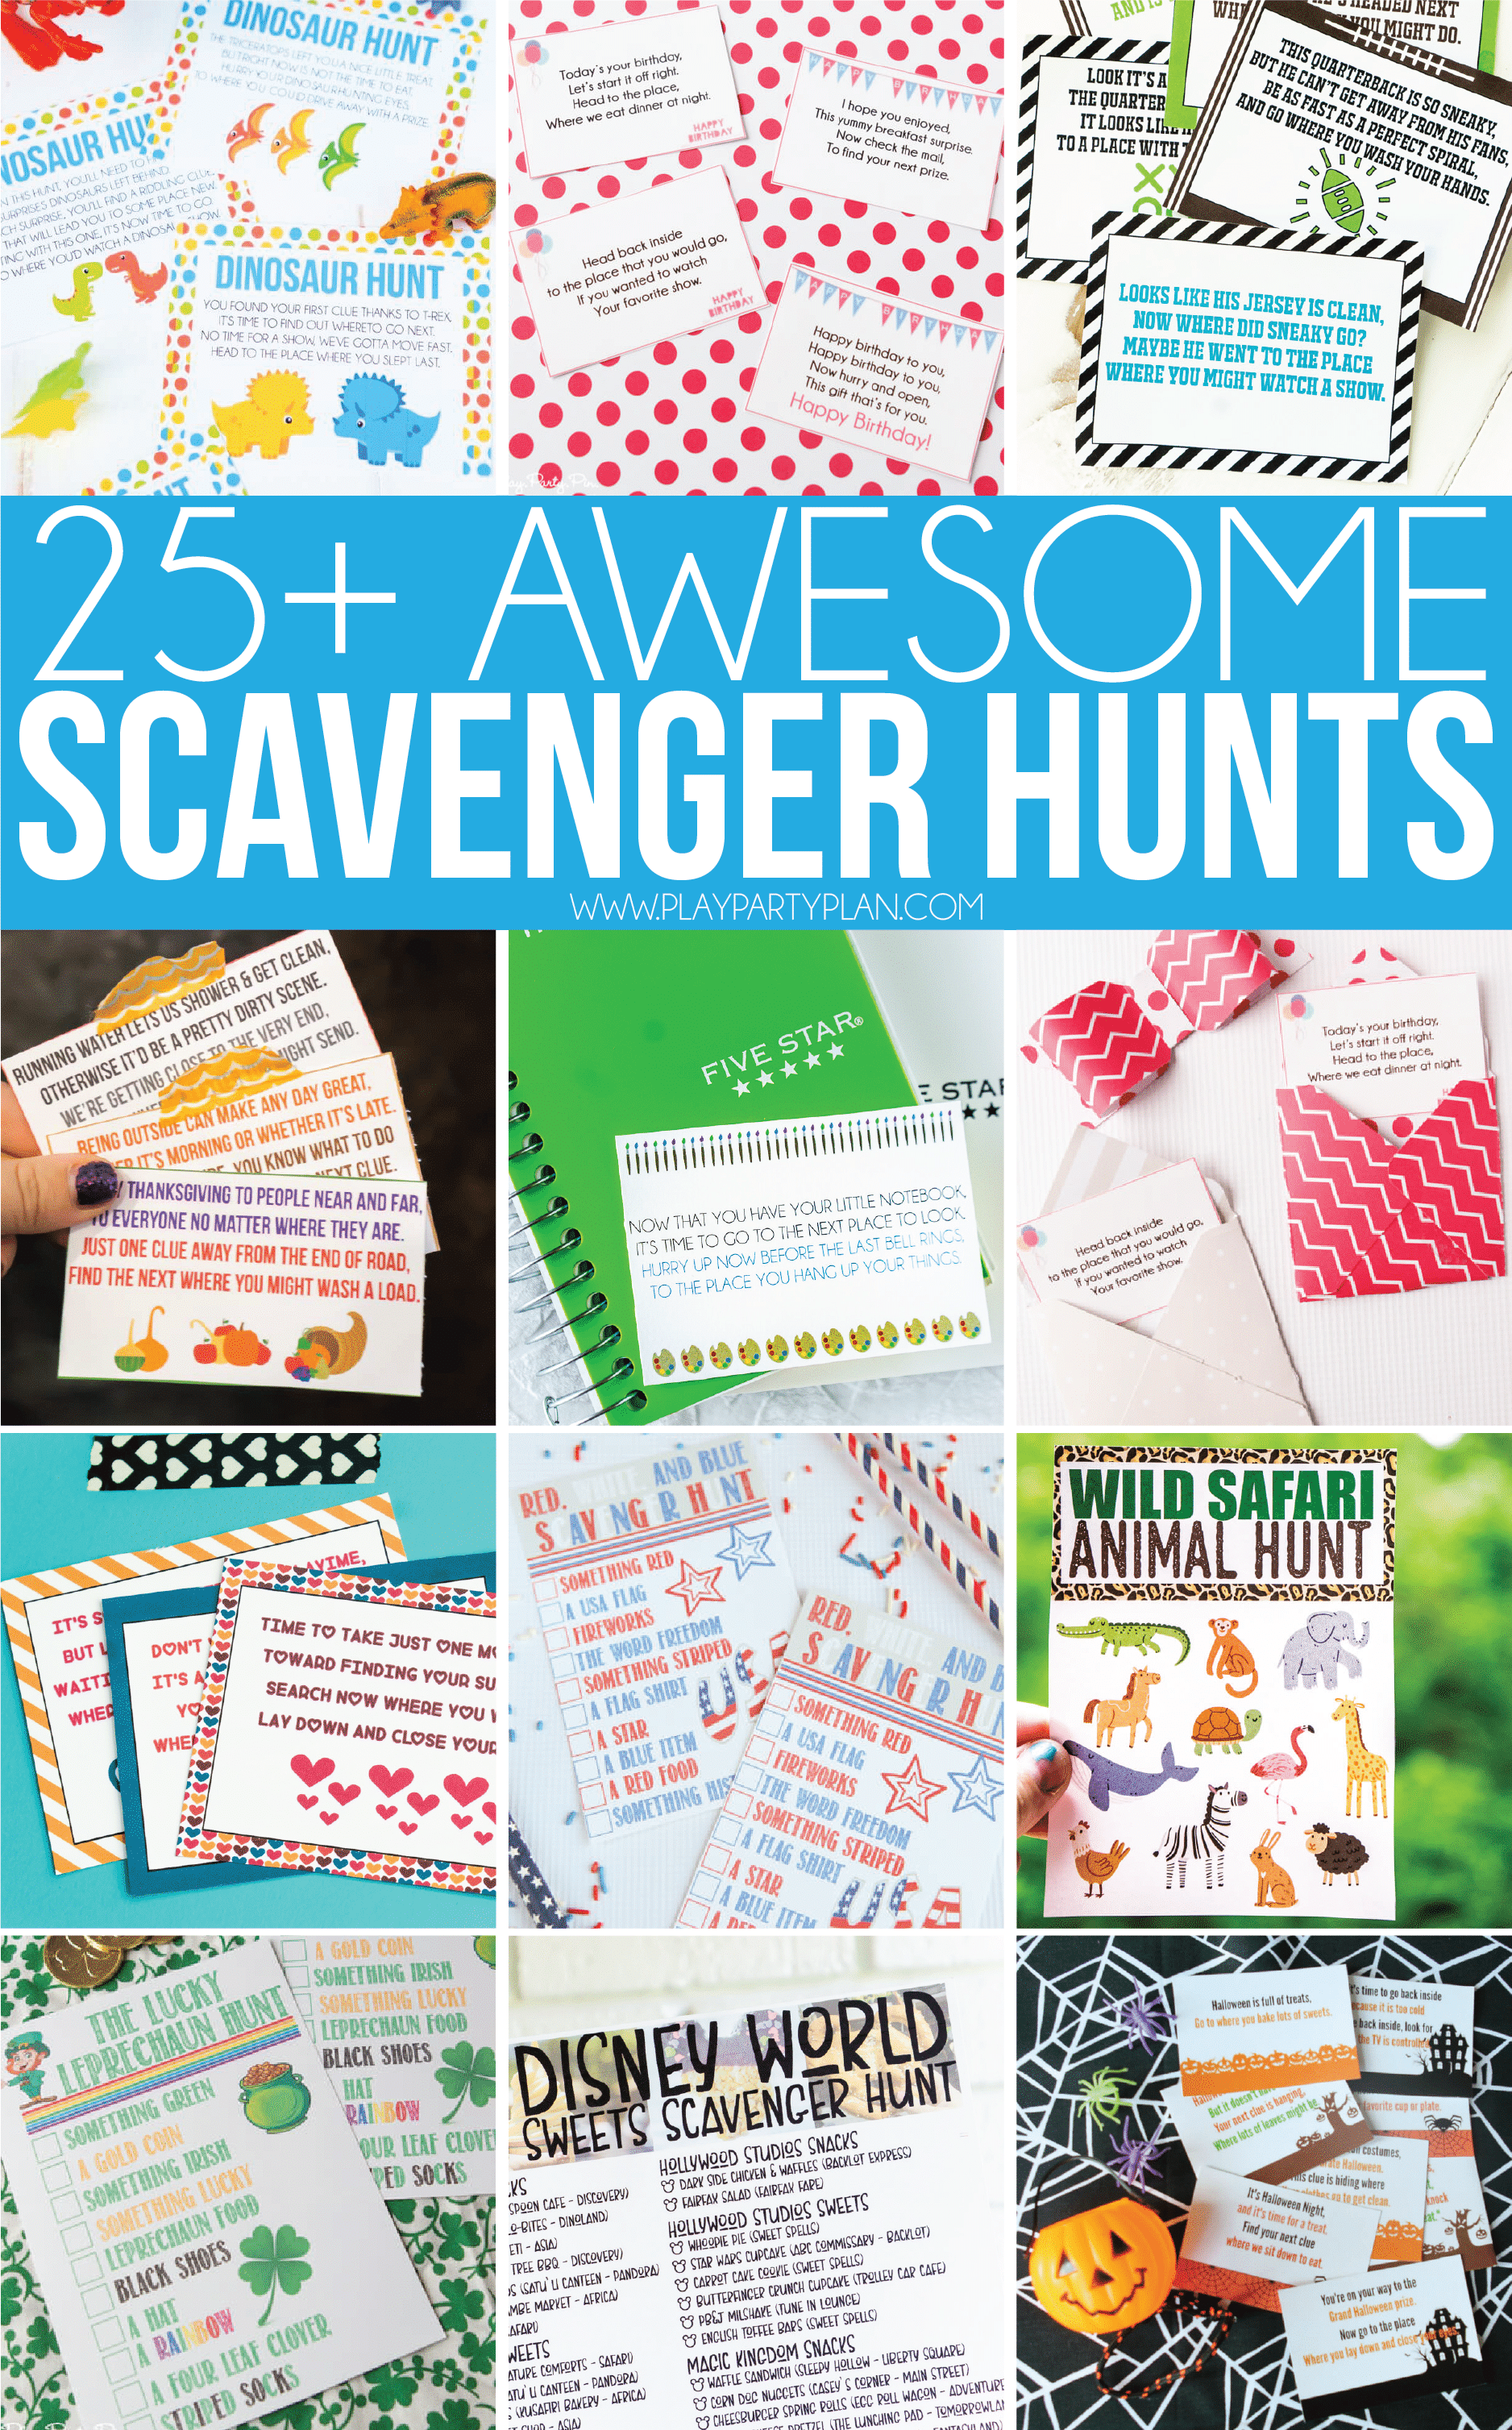 The best scavenger hunt ideas for all ages - for kids, for teens, for adults, and even for preschoolers! There's something for everyone including ideas to do for boyfriend gifts, for husband date nights, or even for family night. Try one at an outdoor birthday party, a family reunion, or Christmas party! So many awesome scavenger hunts with scavenger hunt clues included!